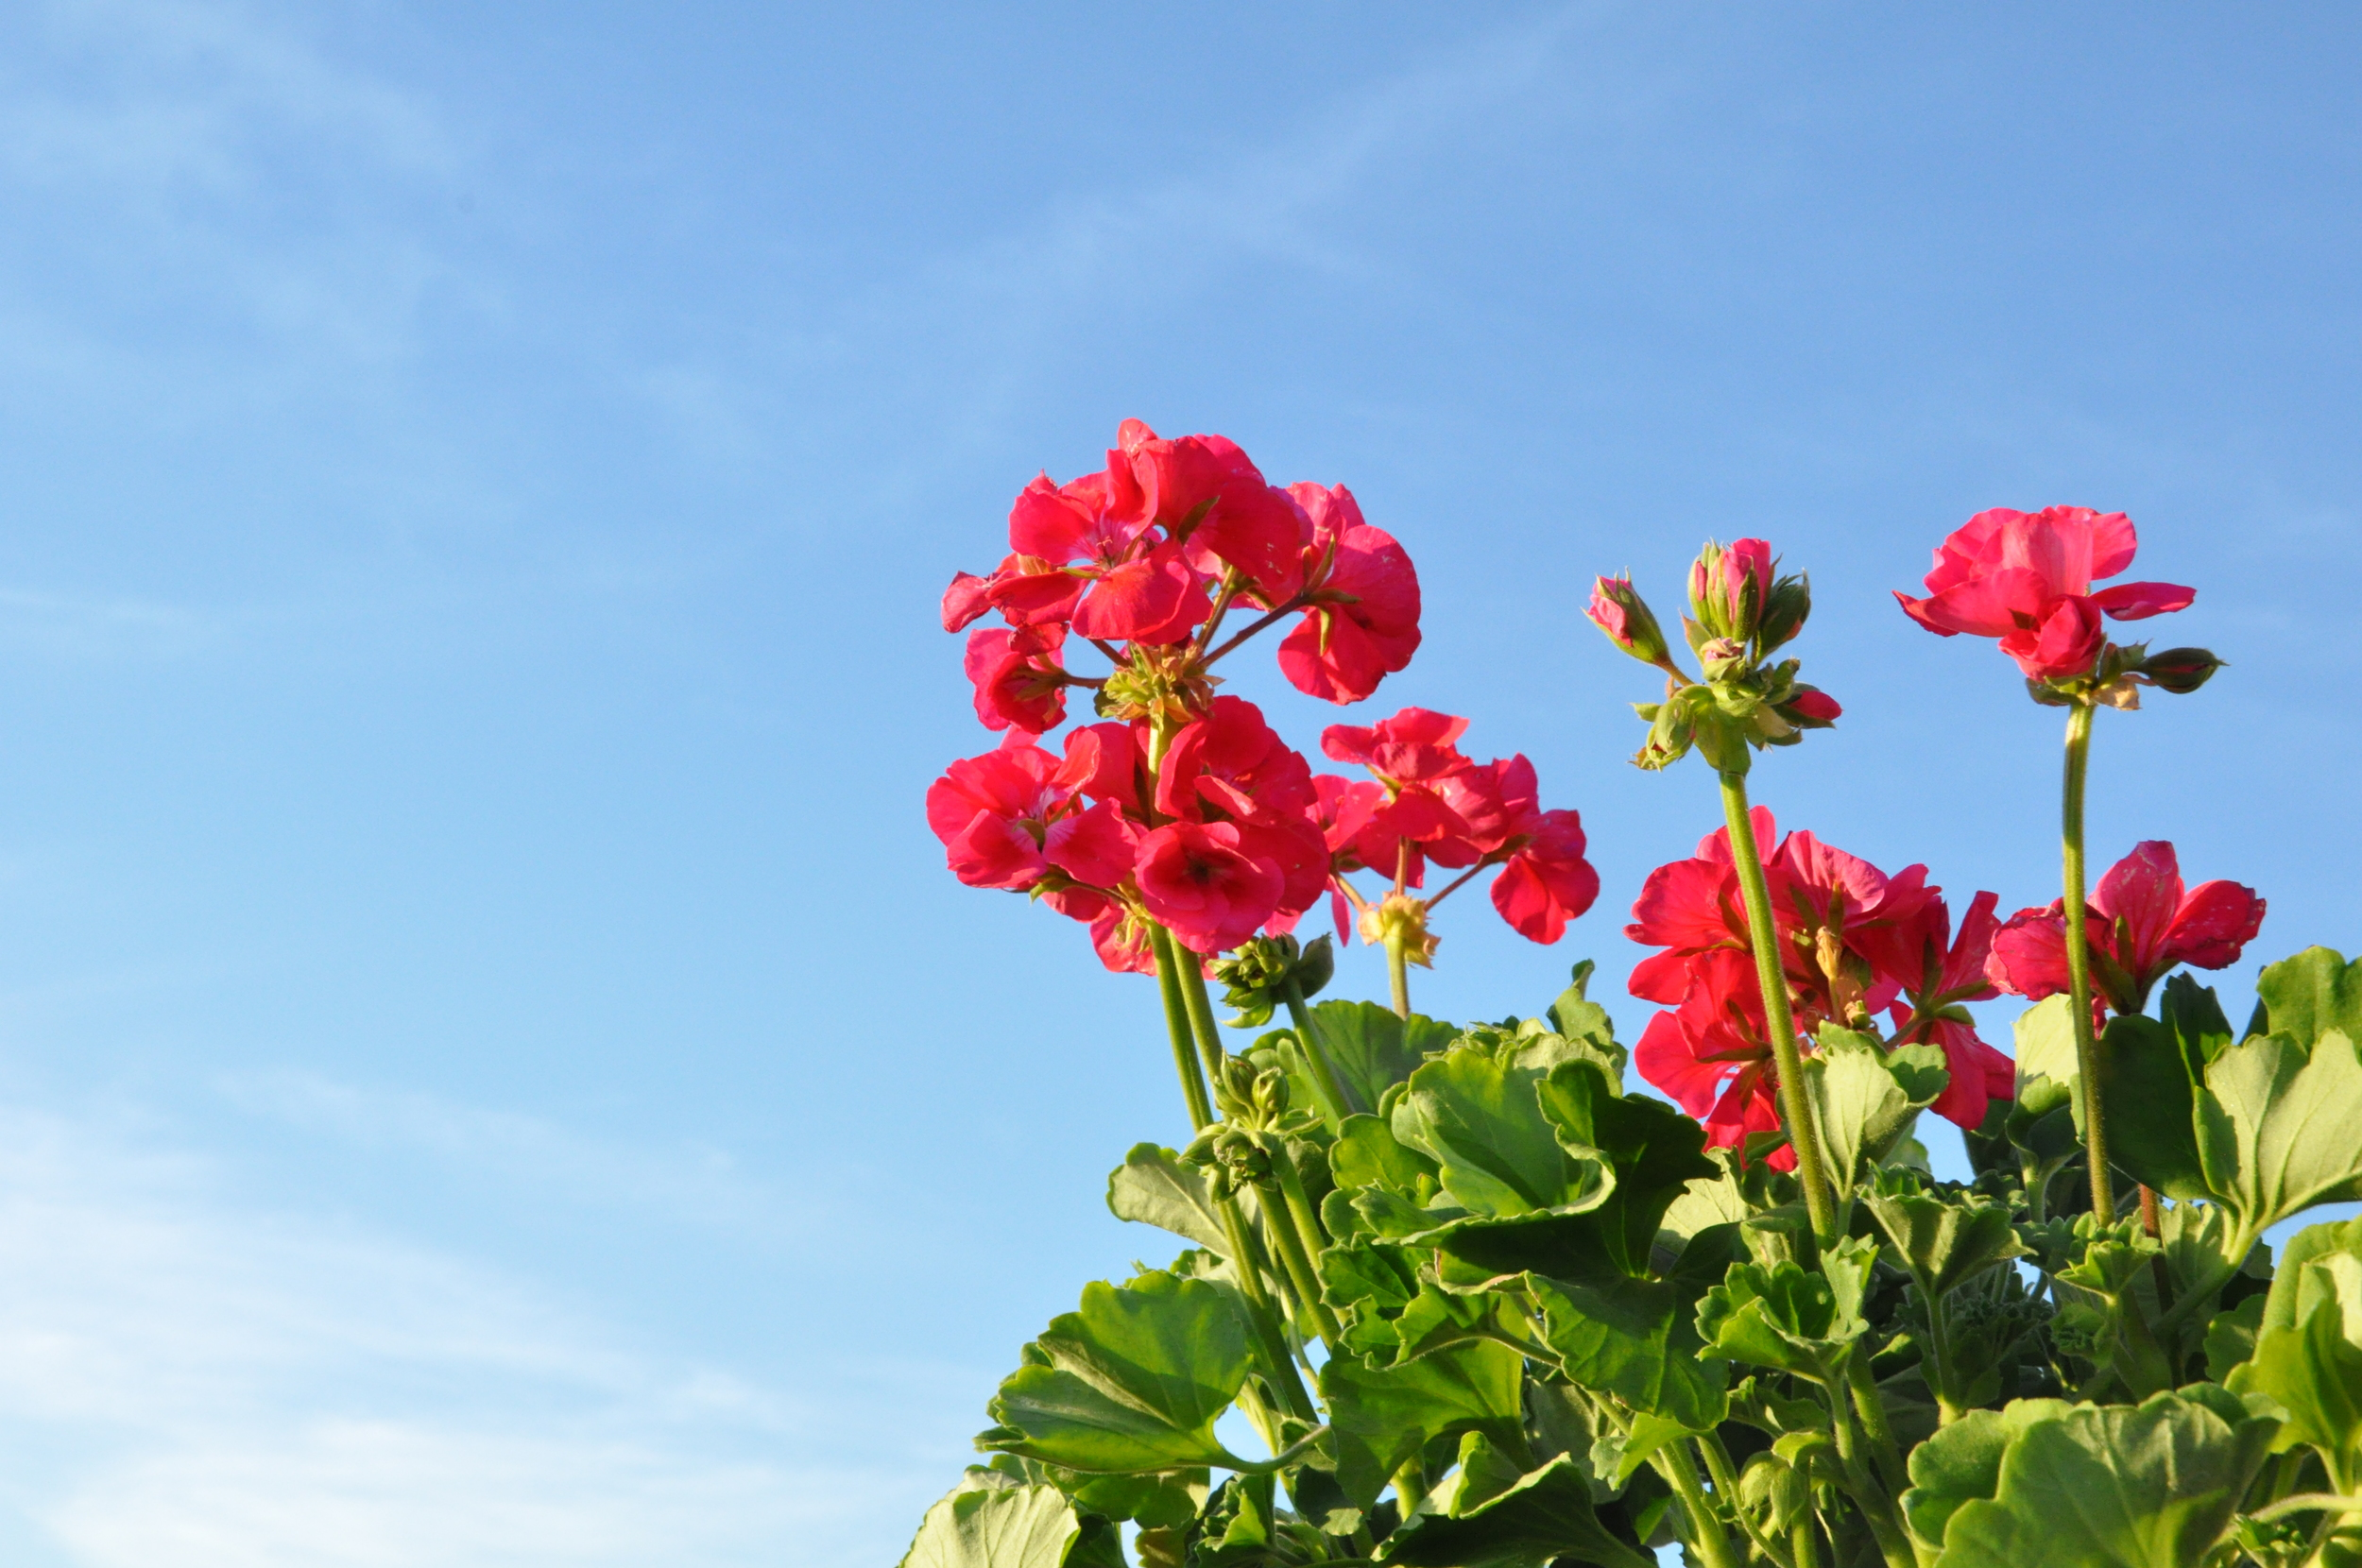 Feeling Springtime in the air with all the sunshine and blooming flowers!